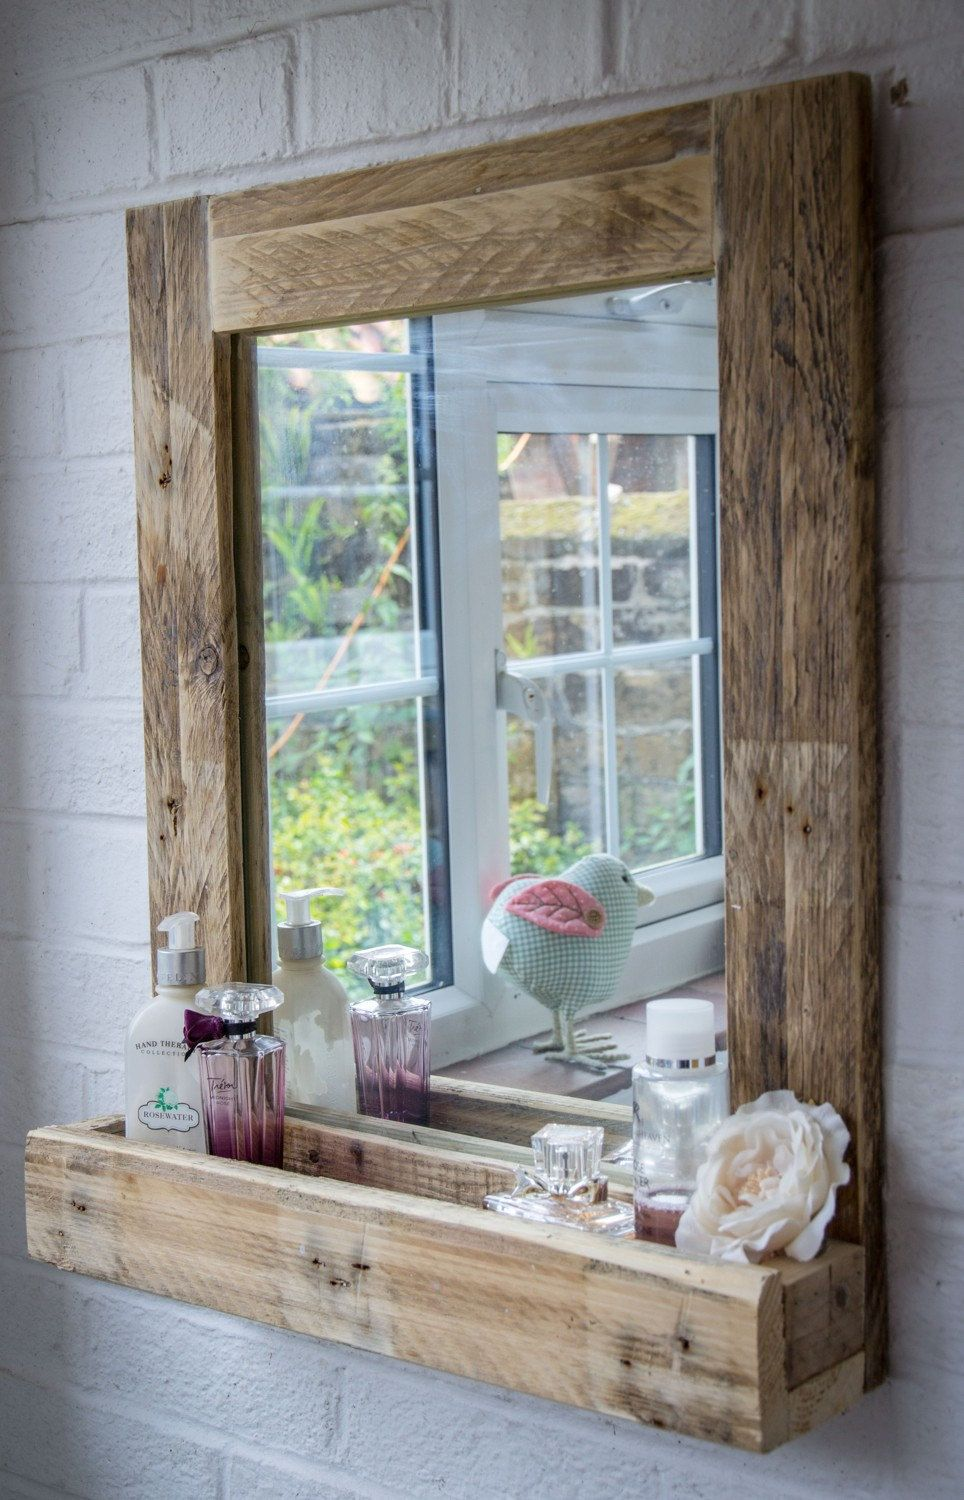 Rustic Bathroom Mirror made from reclaimed pallet wood | DIY ideas ...